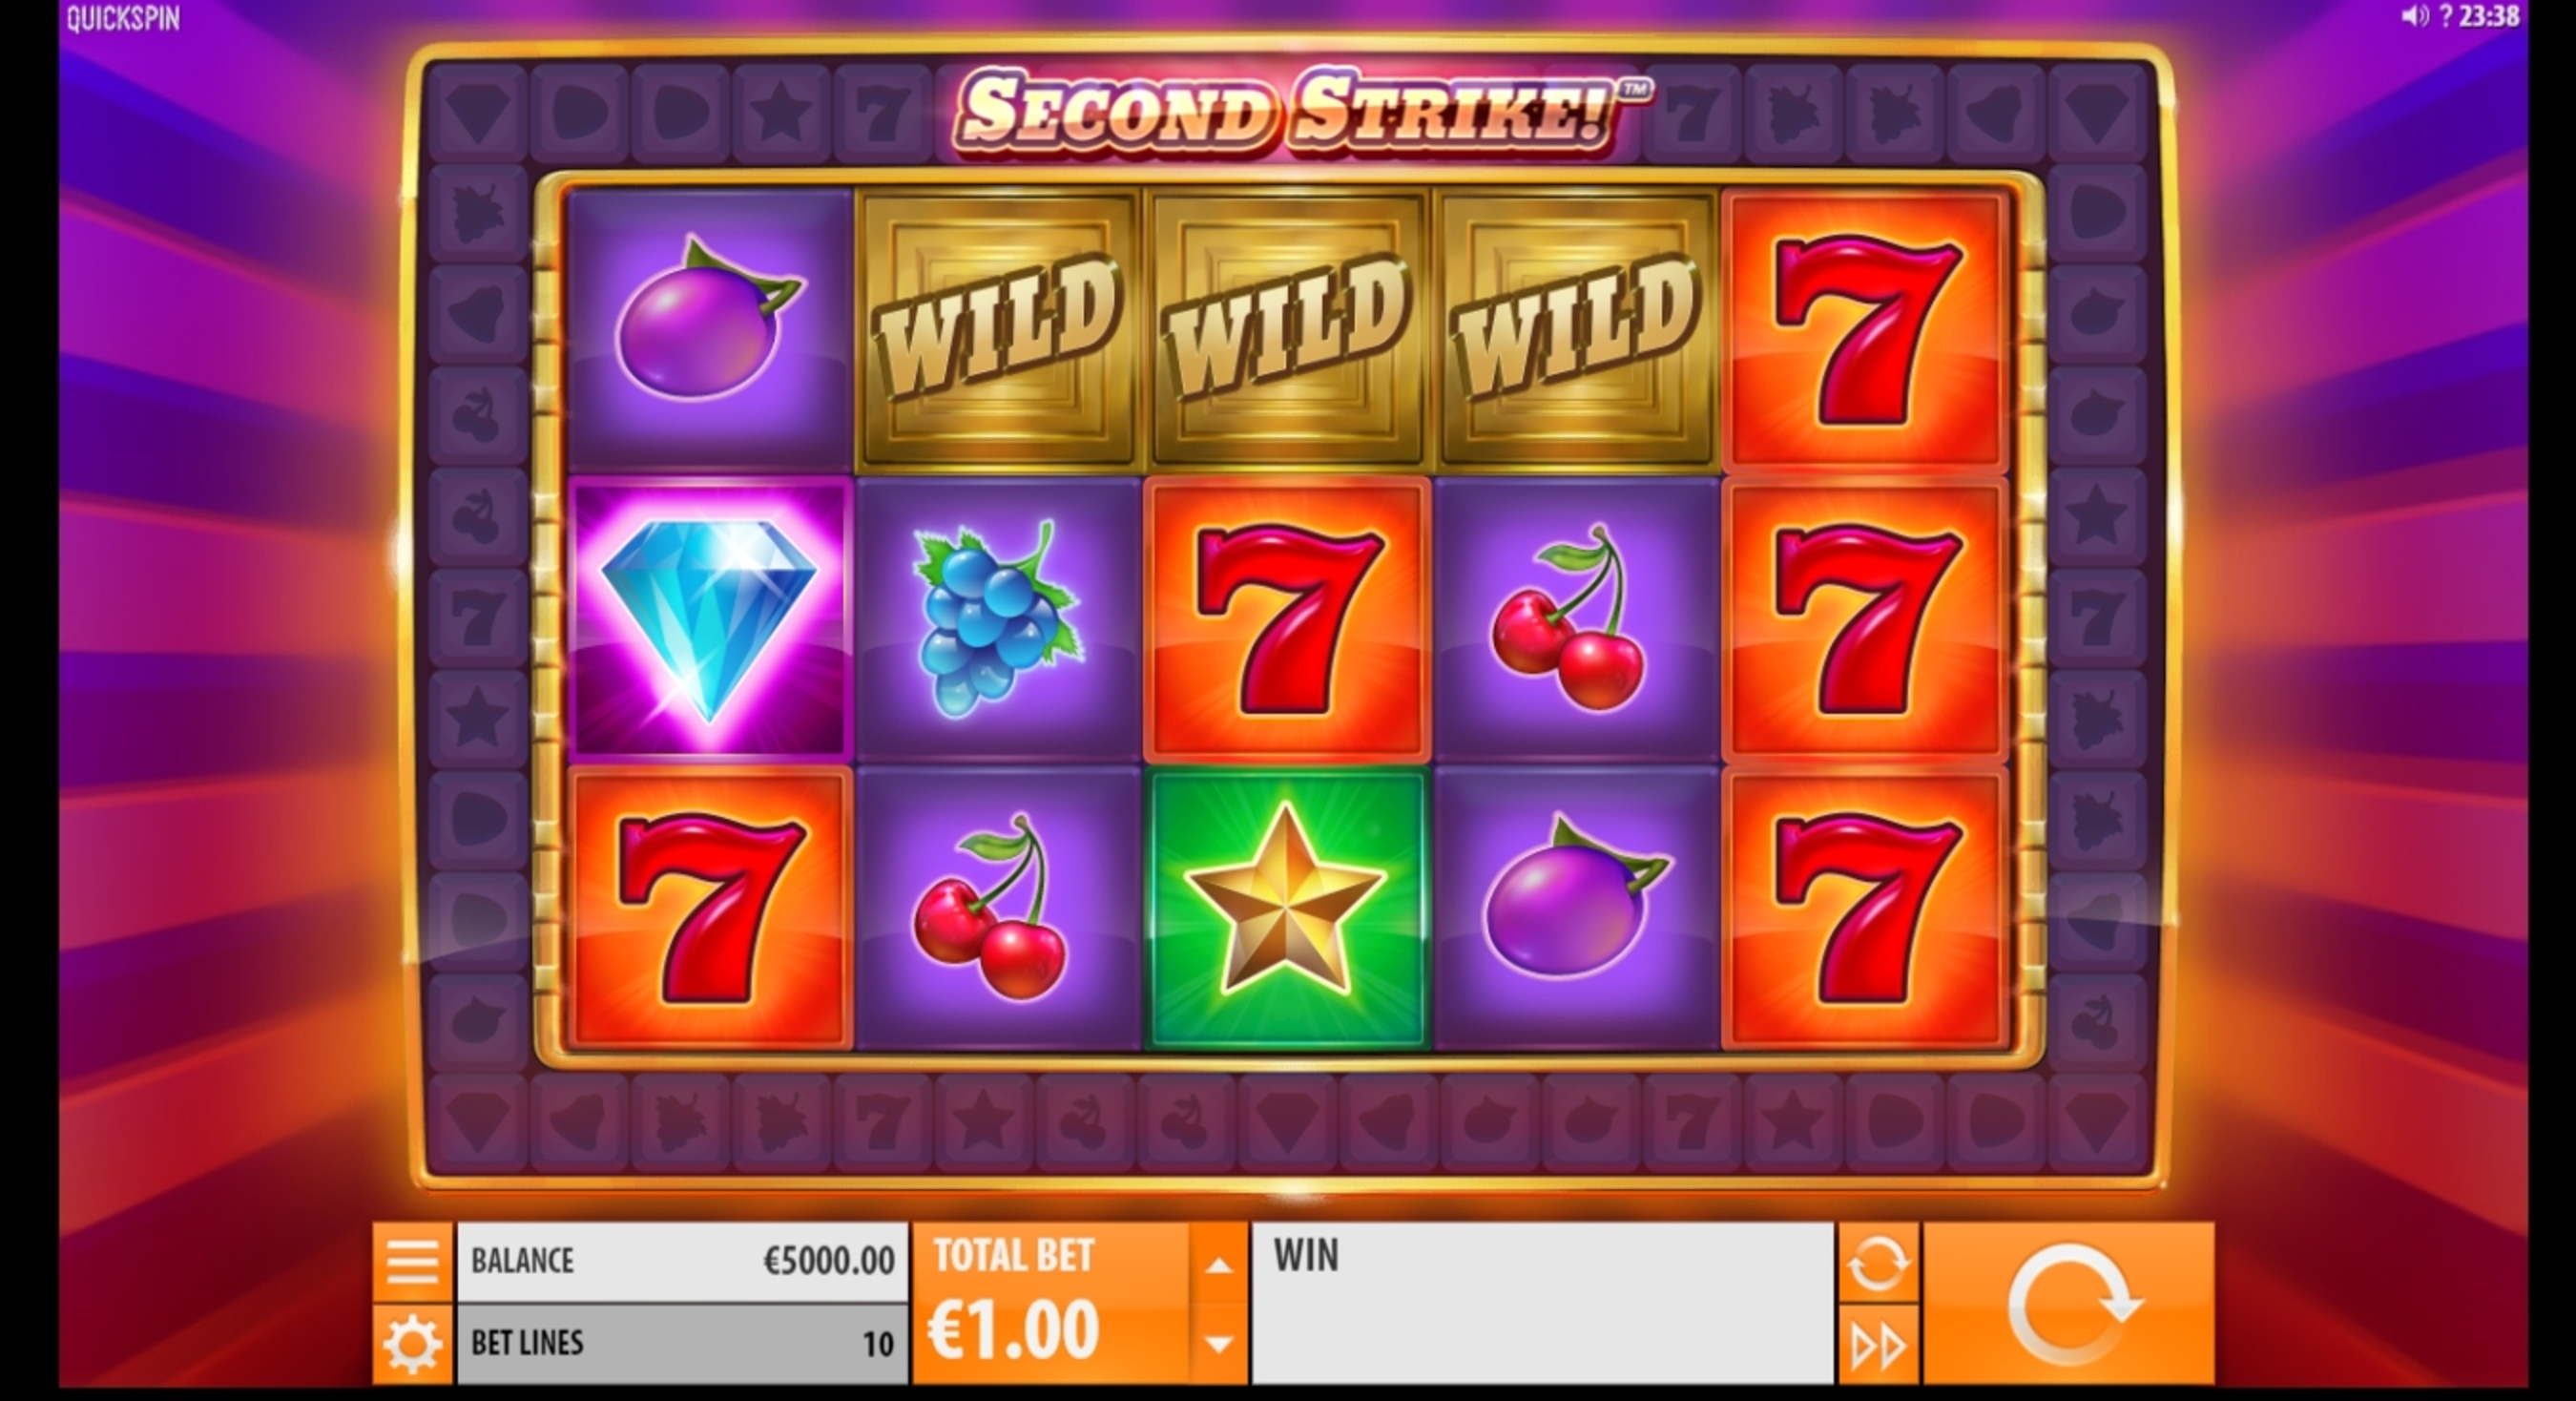 Reels in Second Strike Slot Game by Quickspin